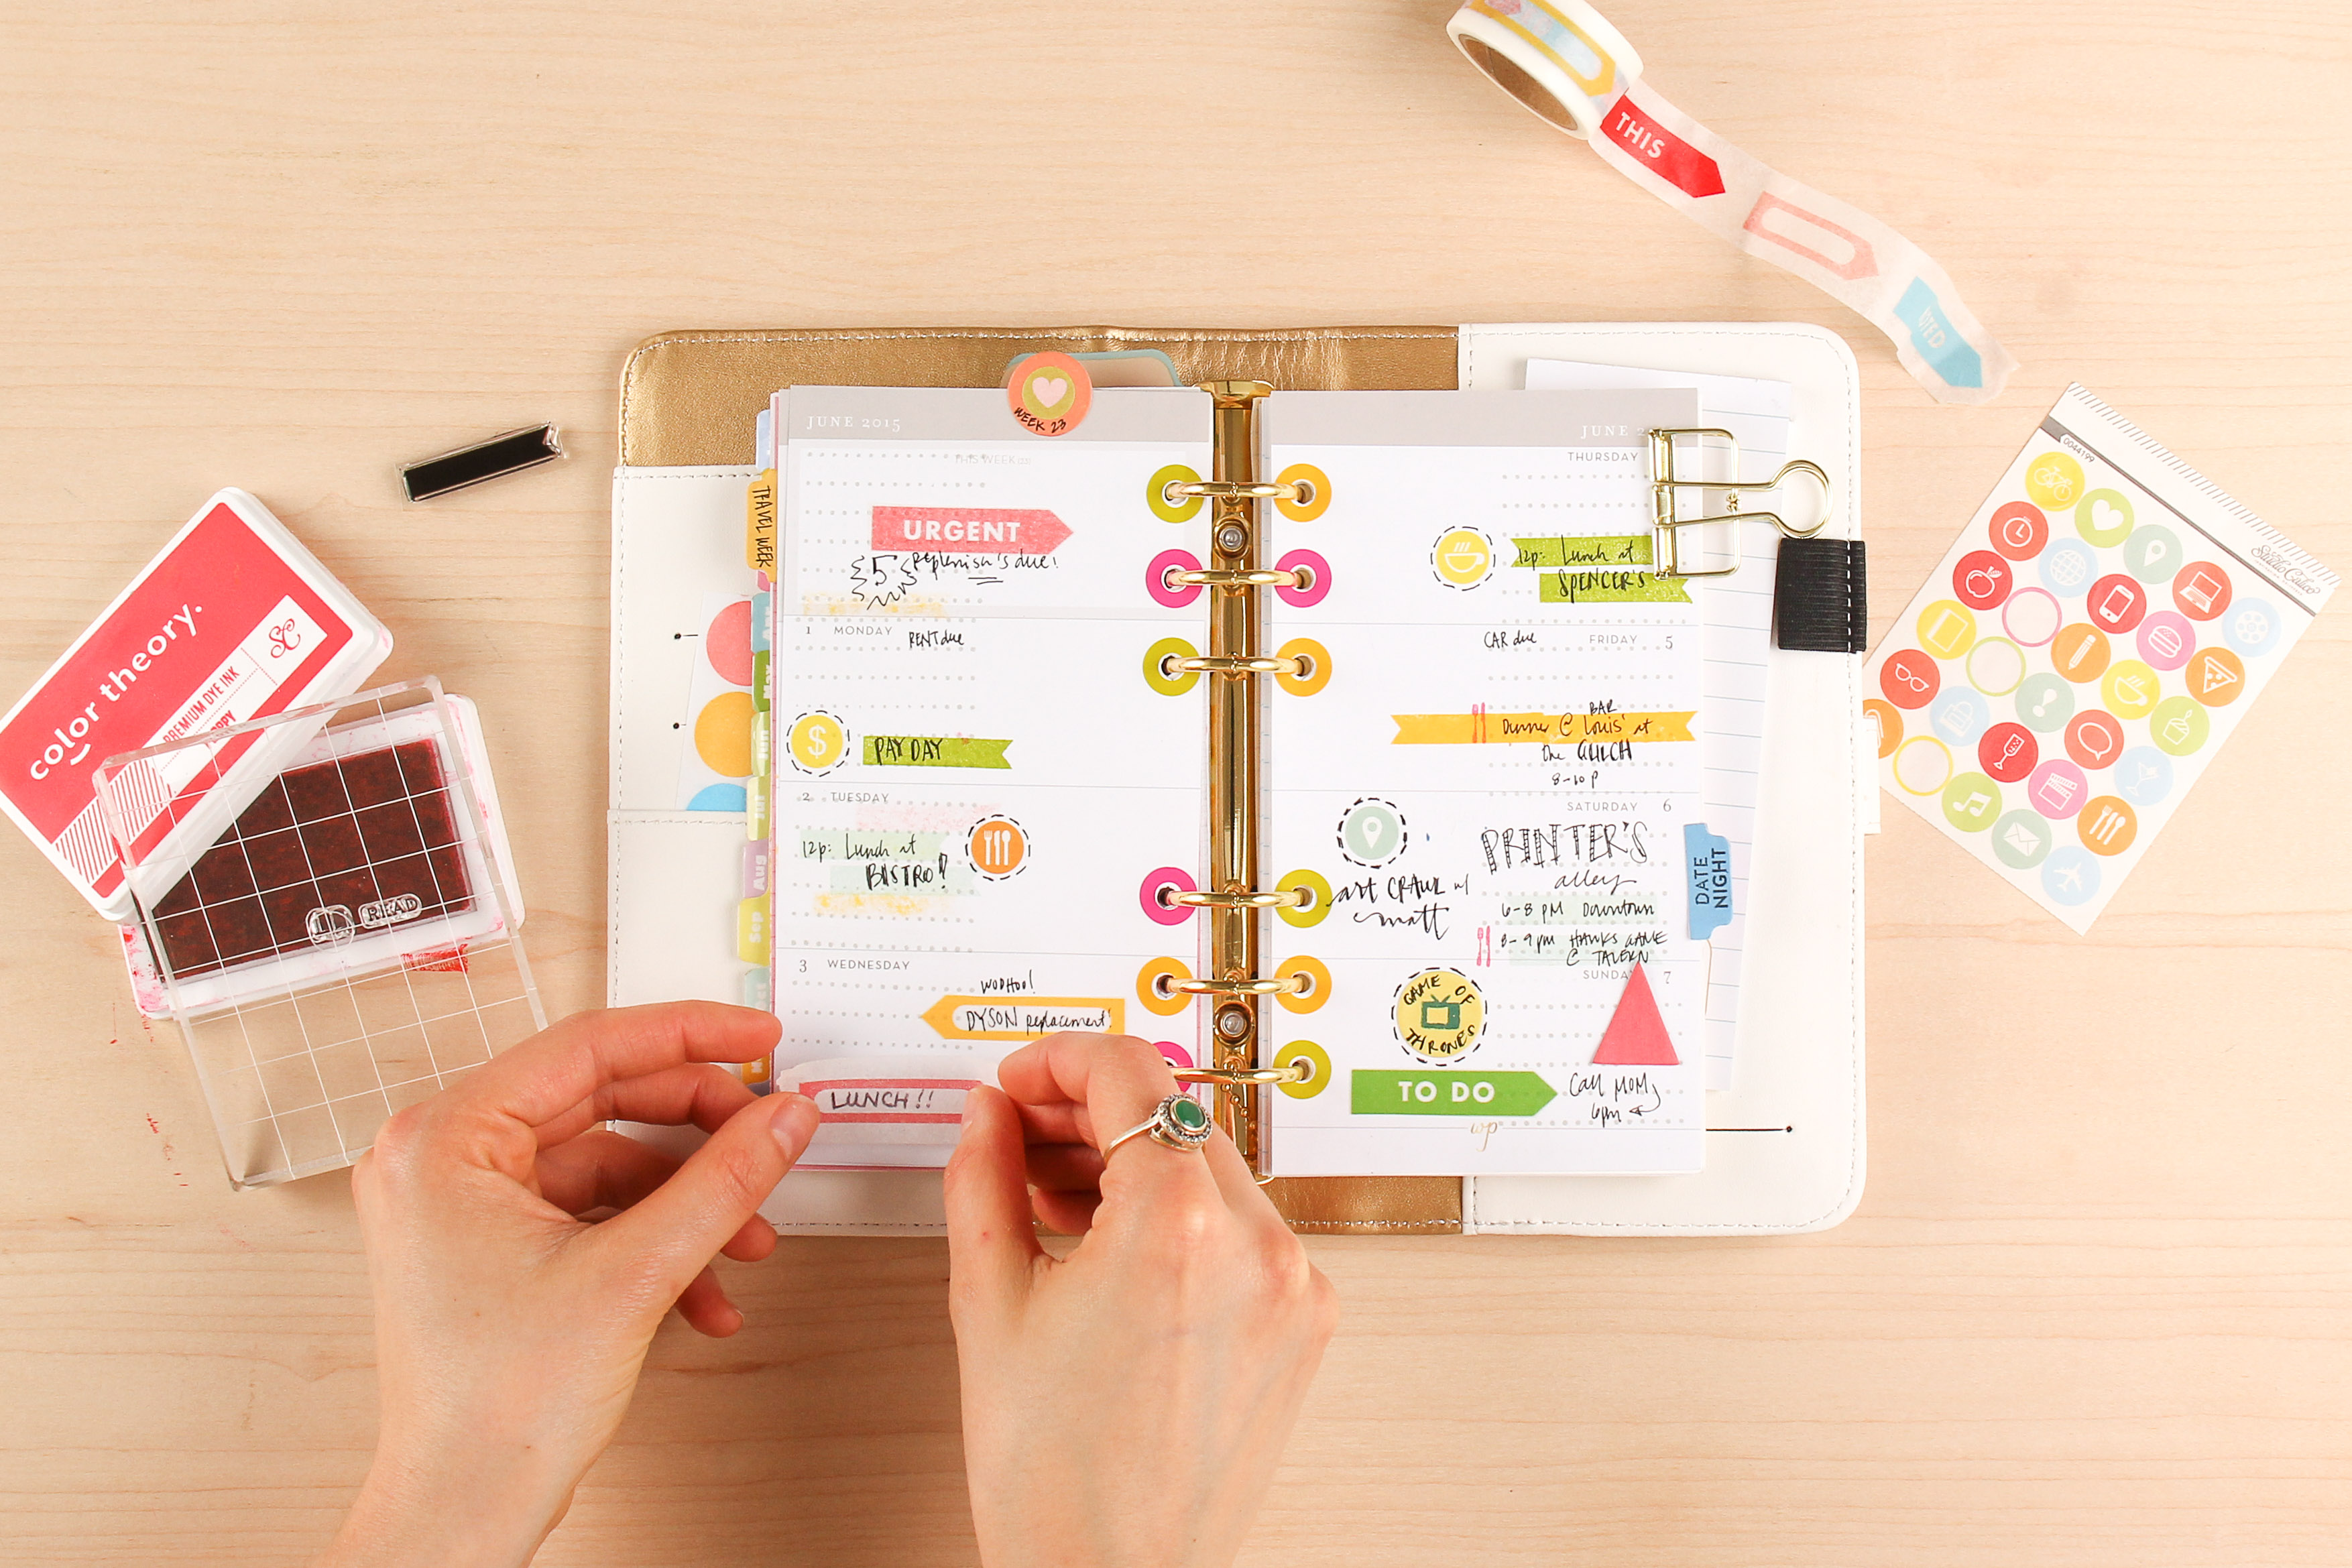 July Planner Kit in Action